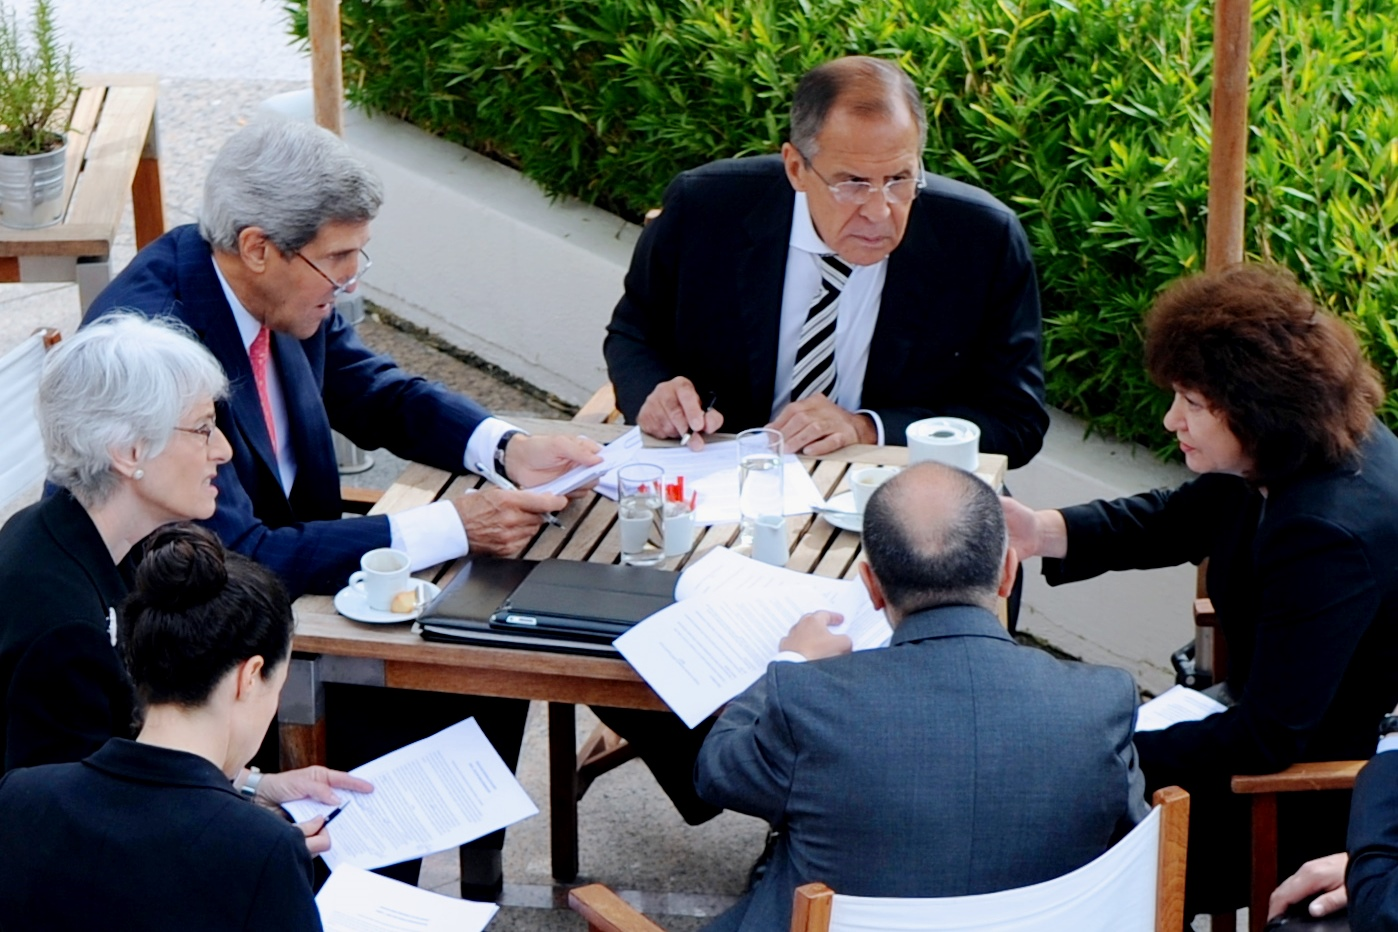 Kerry_and_Lavrov,_with_senior_advisers,_negotiate_chemical_weapons_agreement_on_September_14,_2013